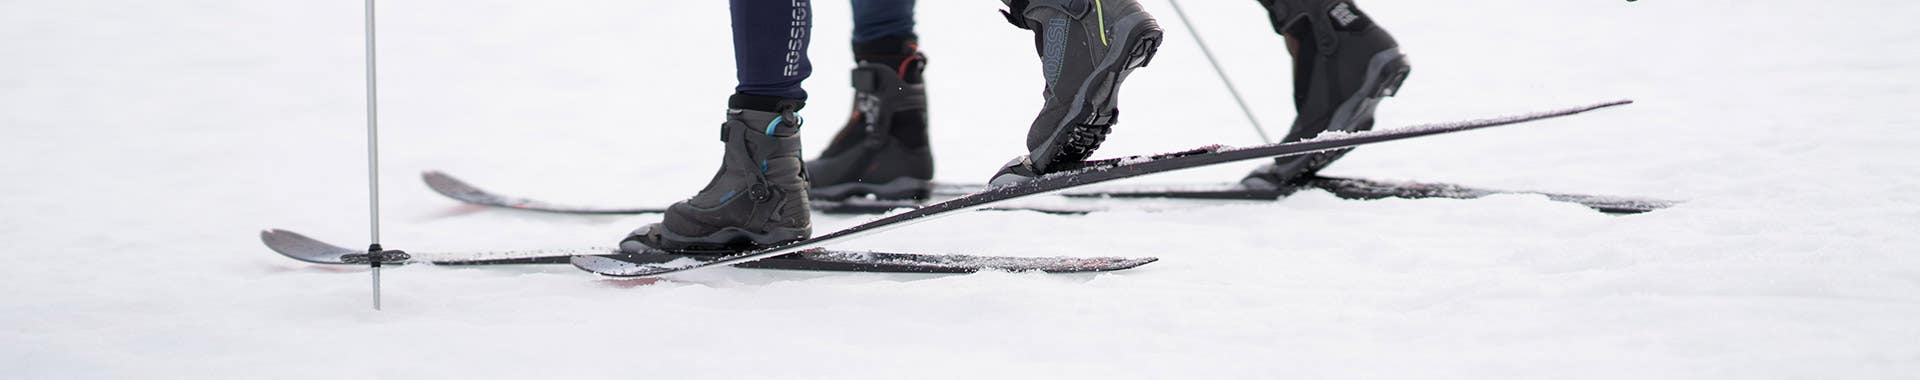 Nordic touring ski boots